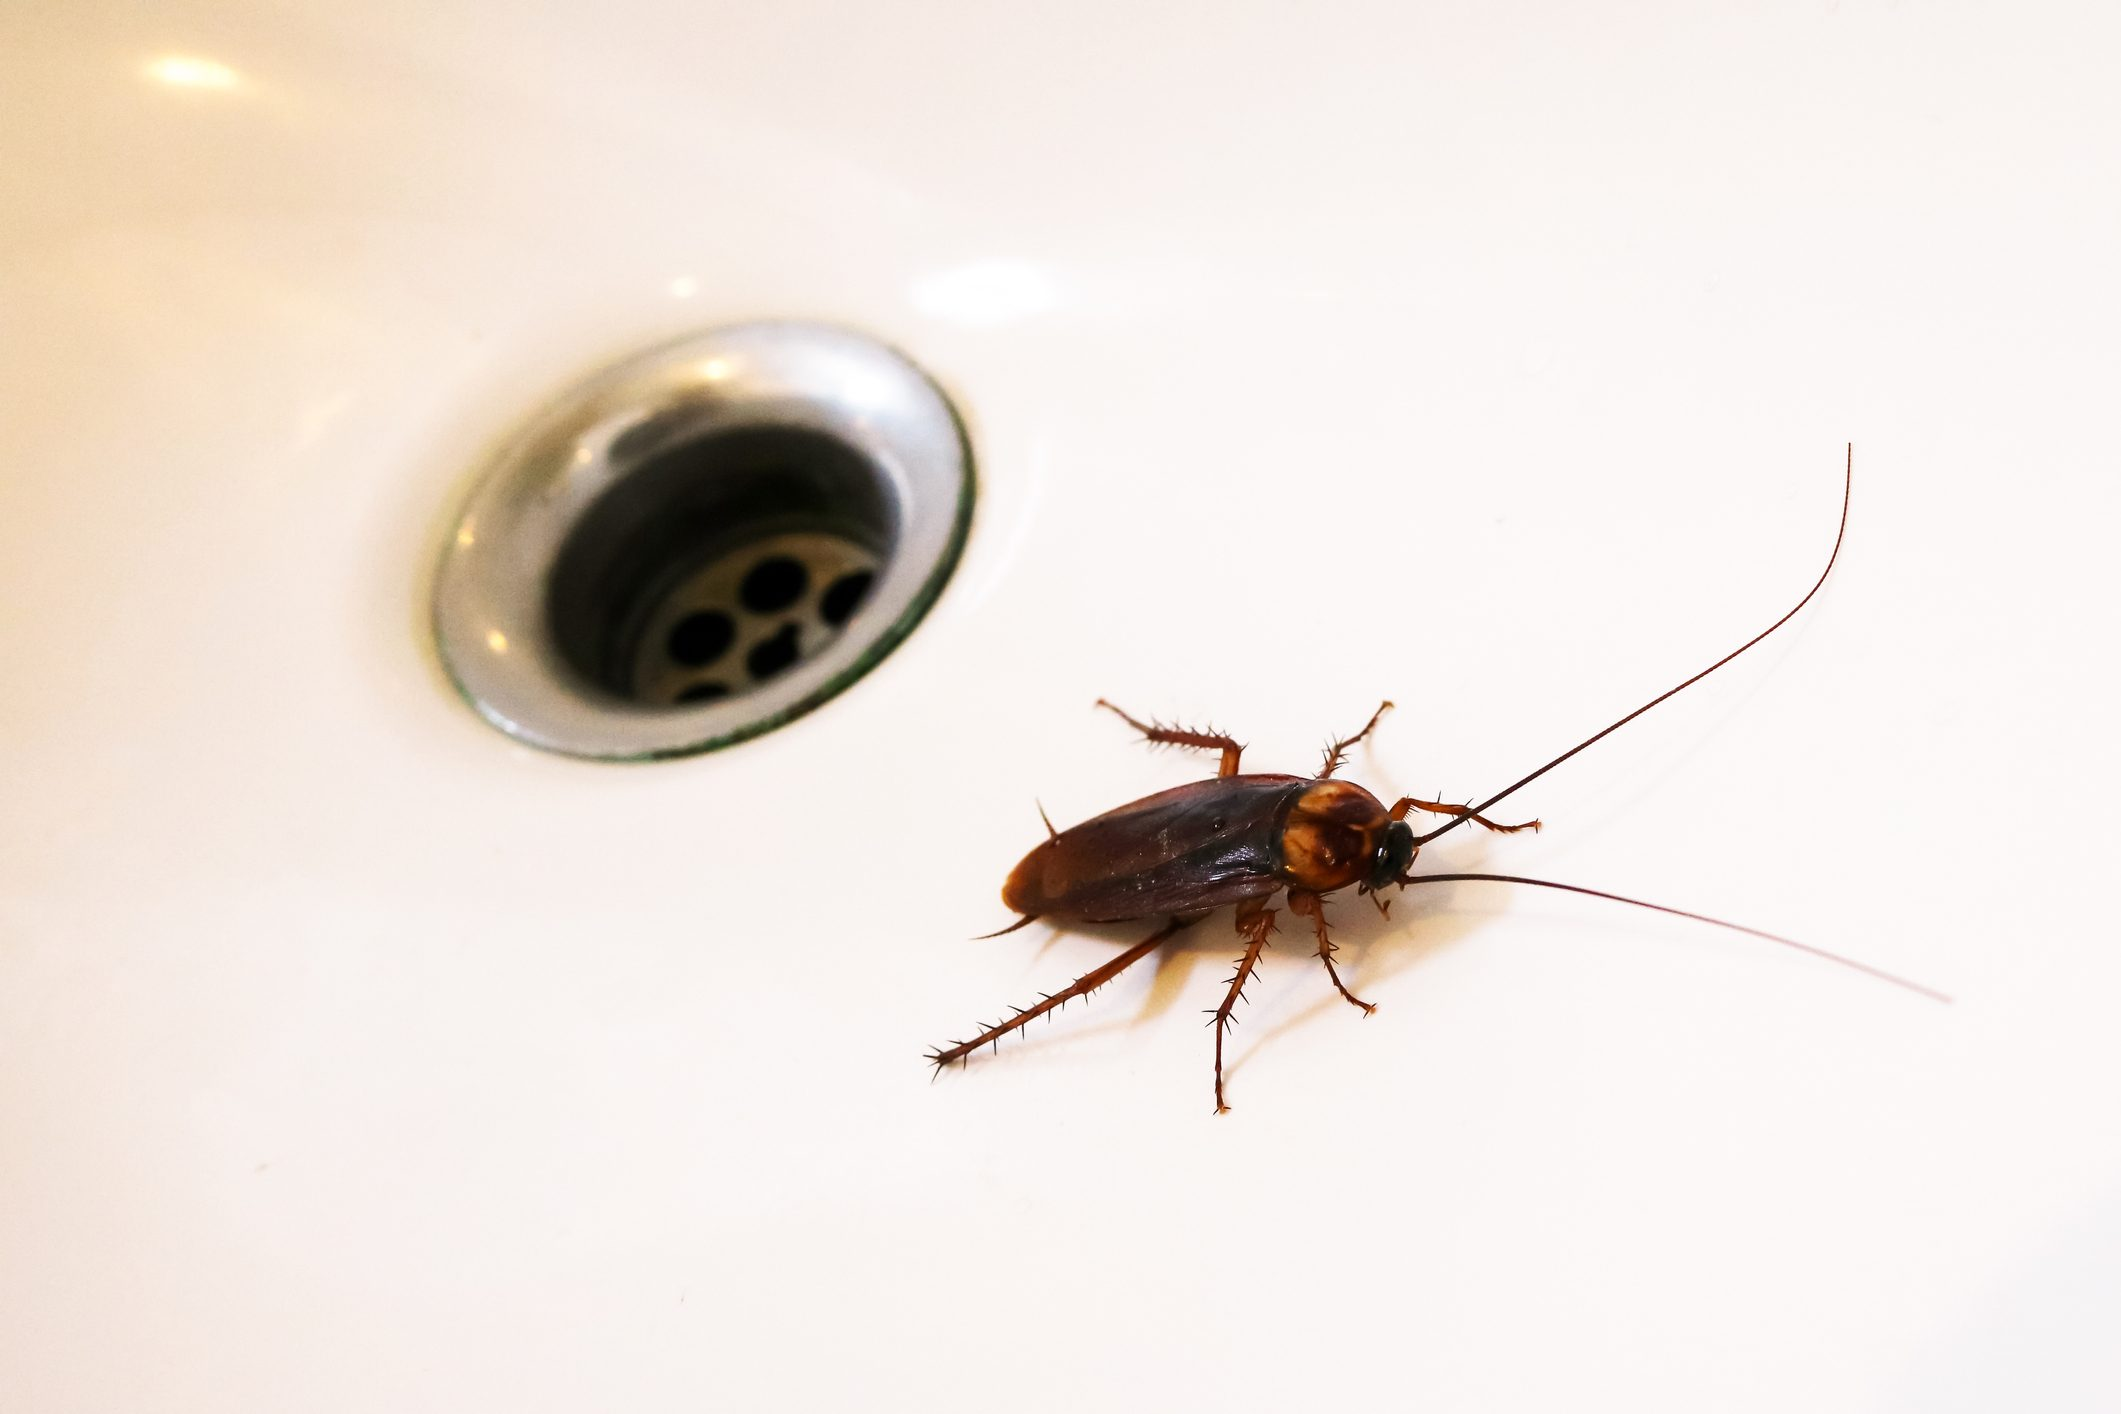 Cockroaches in the sink.